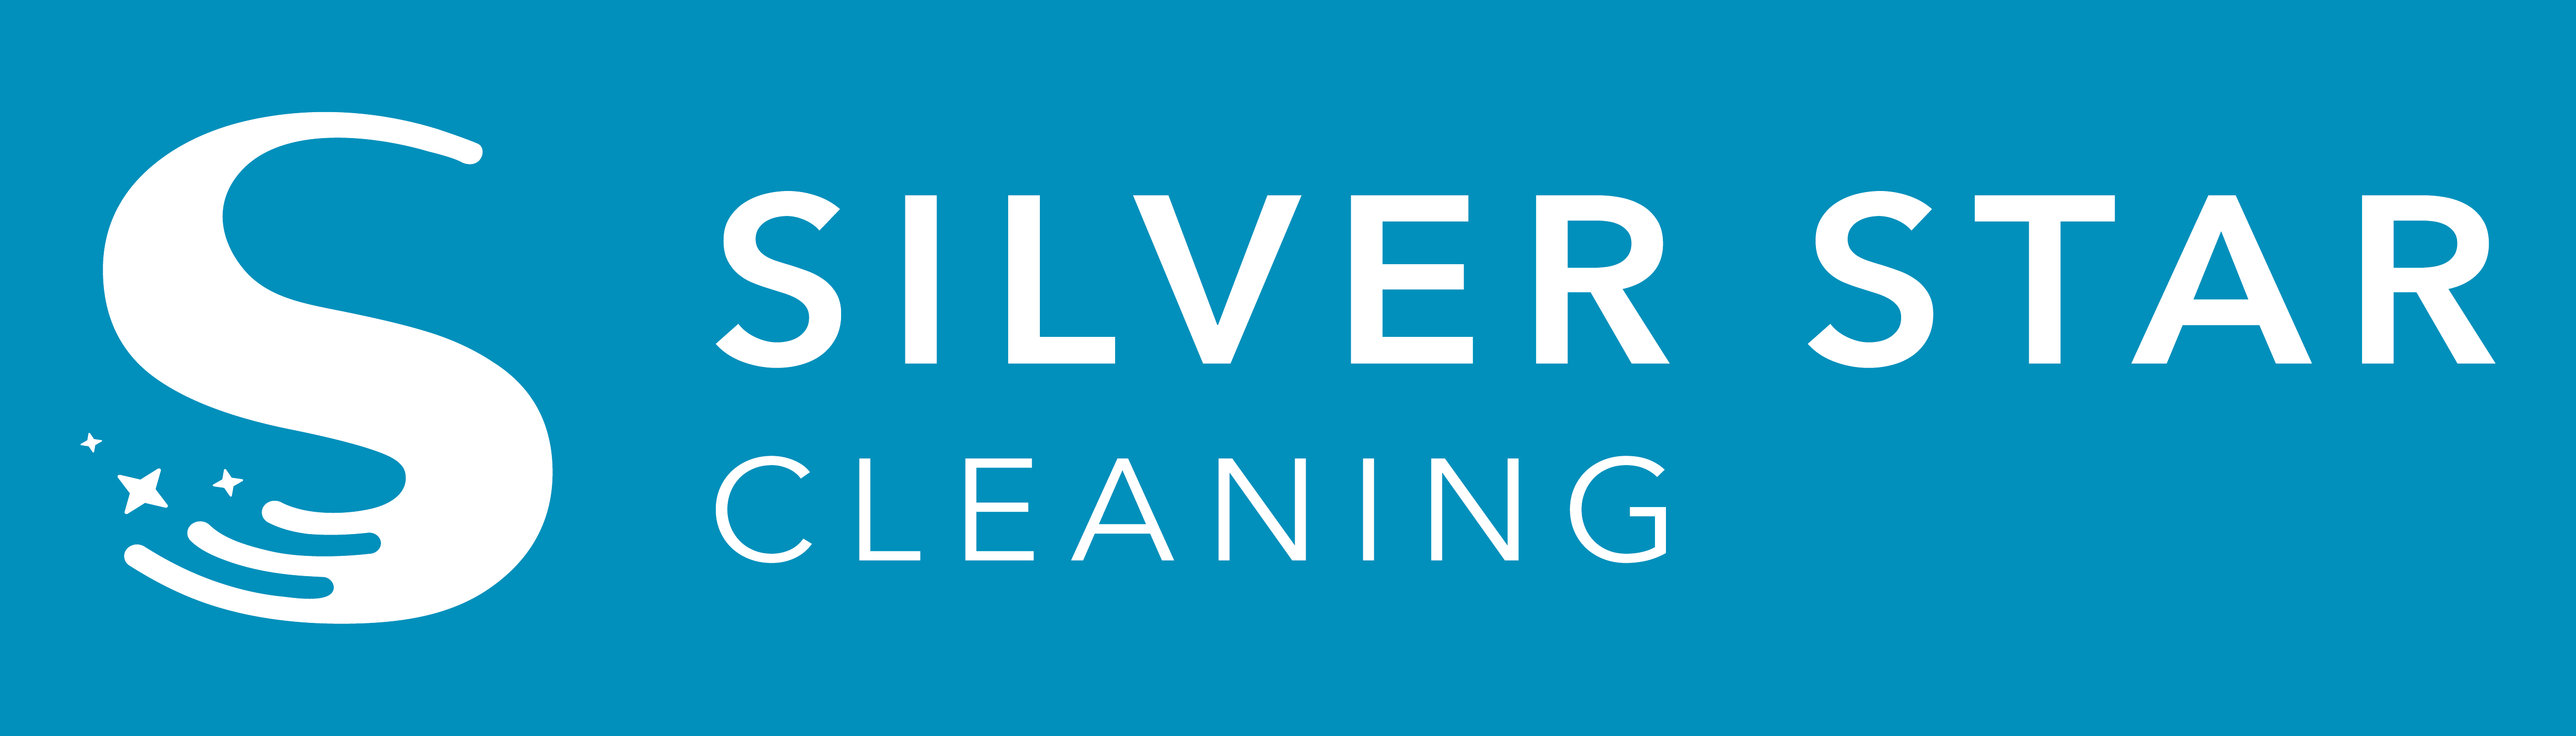 Silver Star Cleaning